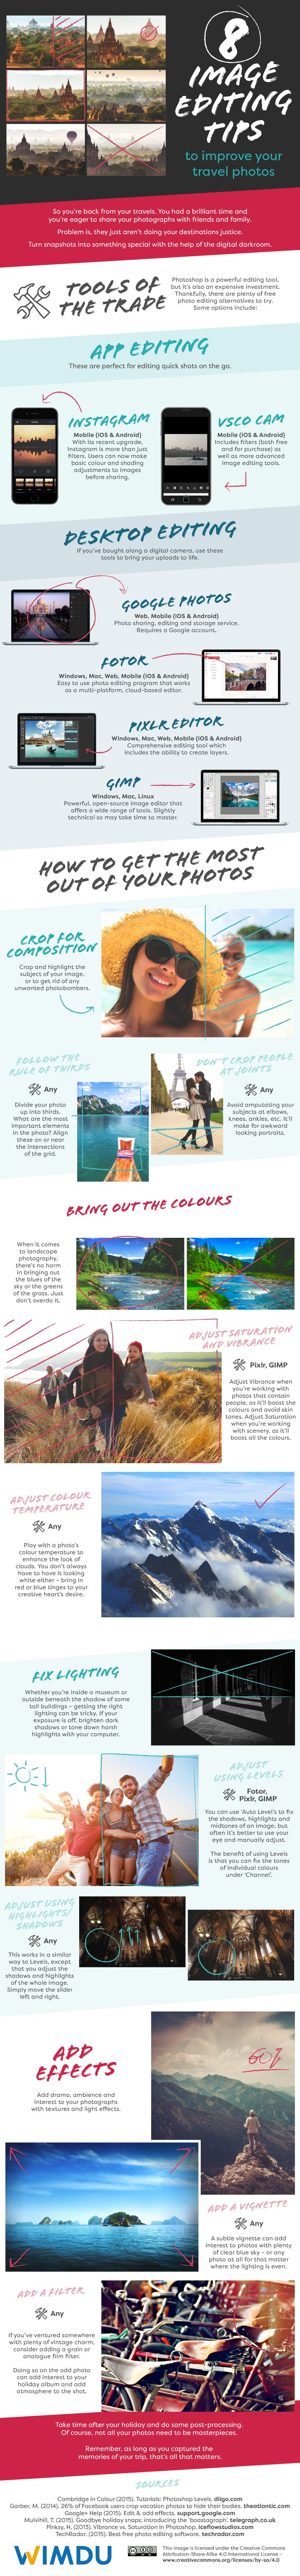 8 Image Editing Tips to Improve your Travel Photos #infographic #Travel #Photography